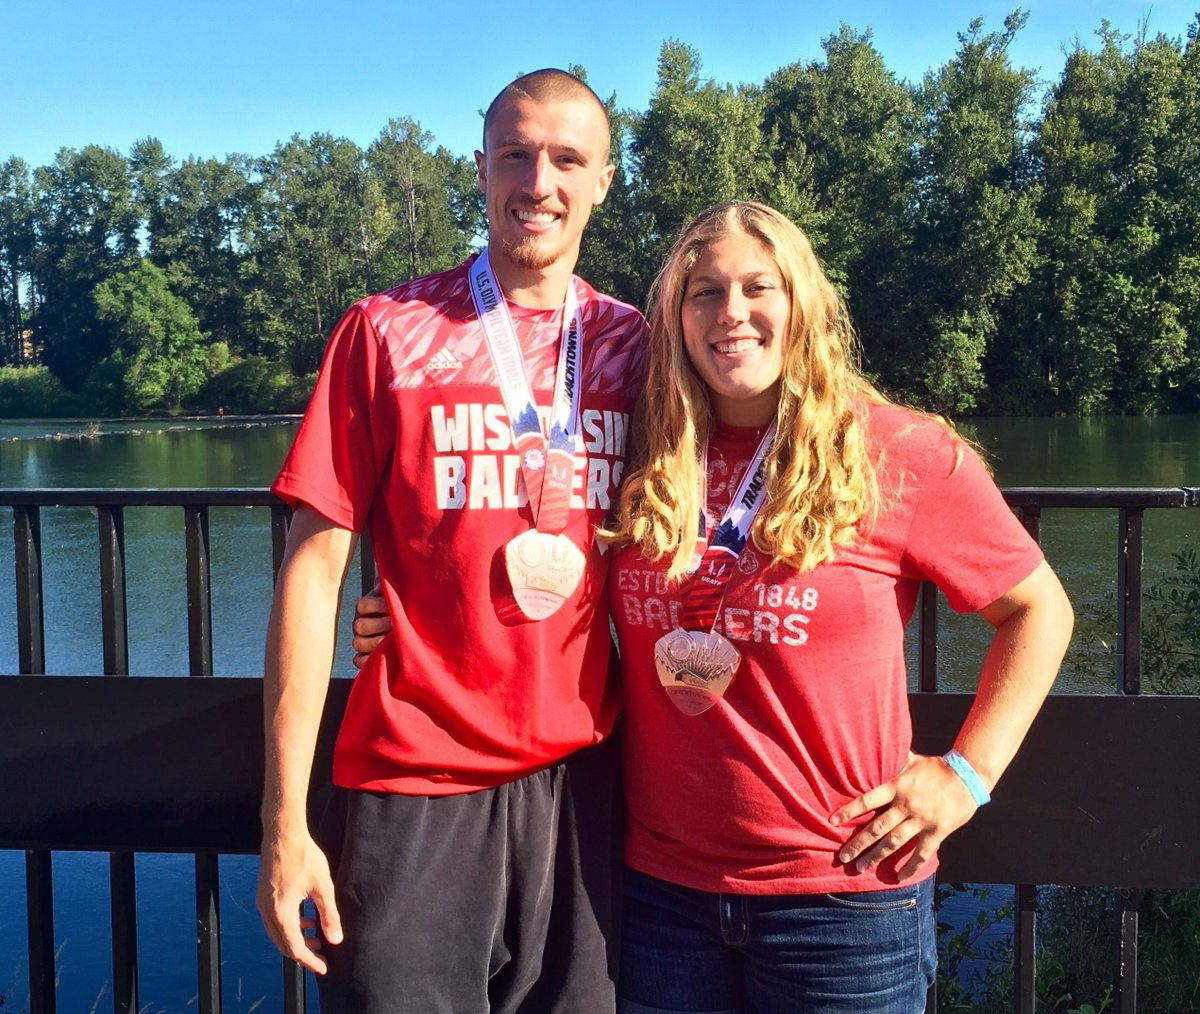 #ThrowbackThursday to the 2016 U.S. Olympic Trials when Zach Ziemek and @KelseyCard27  both qualified for the 2016 Rio Olympics! https://t.co/INF7OdzGvl